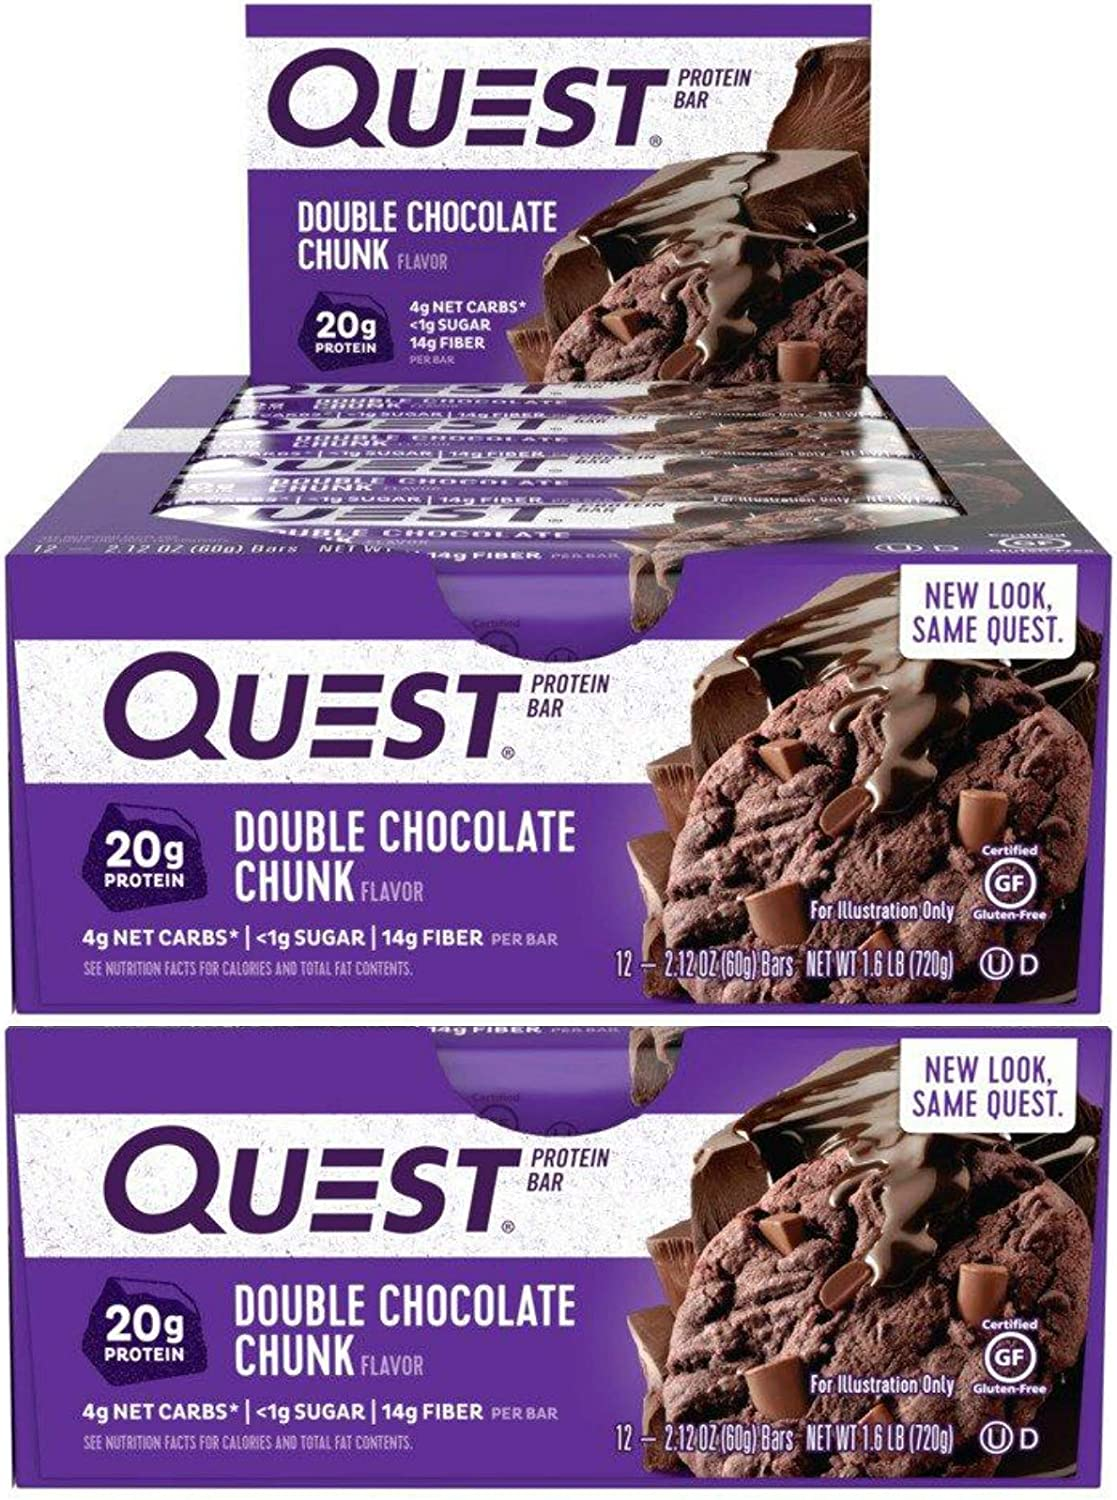 Quest Nutrition Protein Bar Double Chocolate Chunk. Low Carb Meal Replacement Bar w/ 20g+ Protein. High Fiber, Soy-Free, Gluten-Free (24 Count)